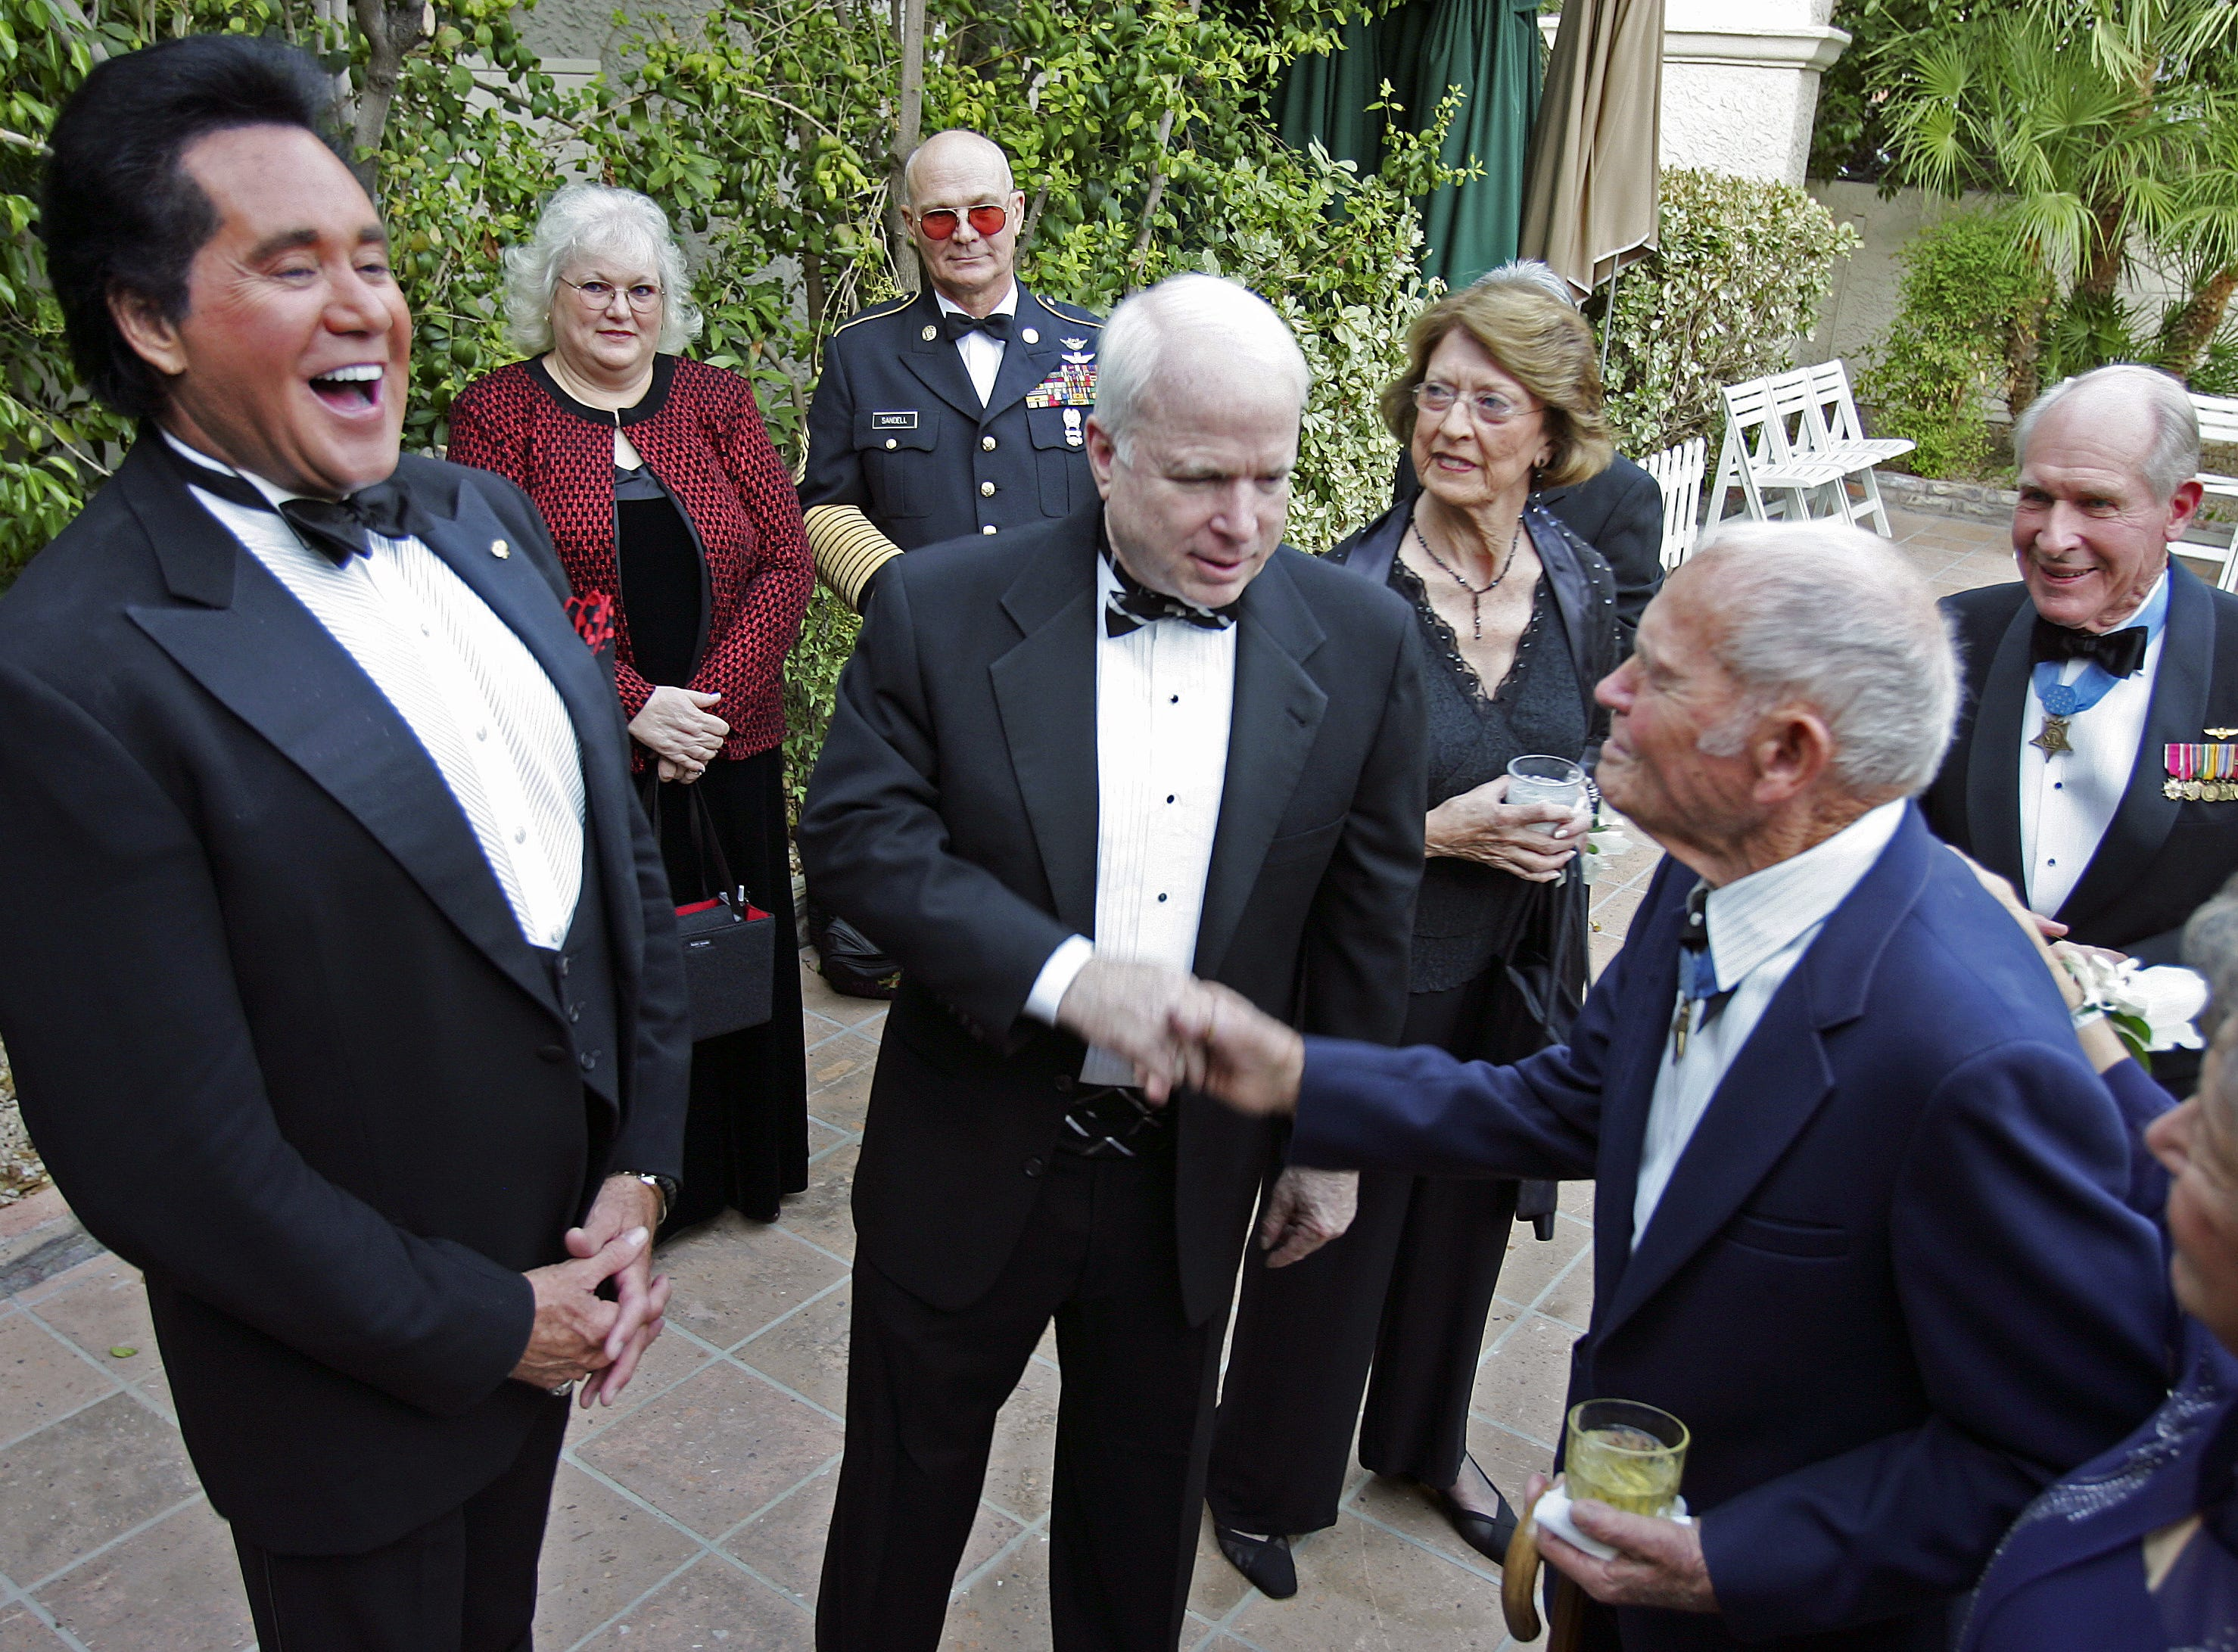 Medal of Honor recipient John Finn (right) shakes hands with Sen. John McCain while Wayne laughs at an award reception and dinner  at the Pointe Hilton Tapatio Cliffs in Phoenix on Sept. 30, 2005.